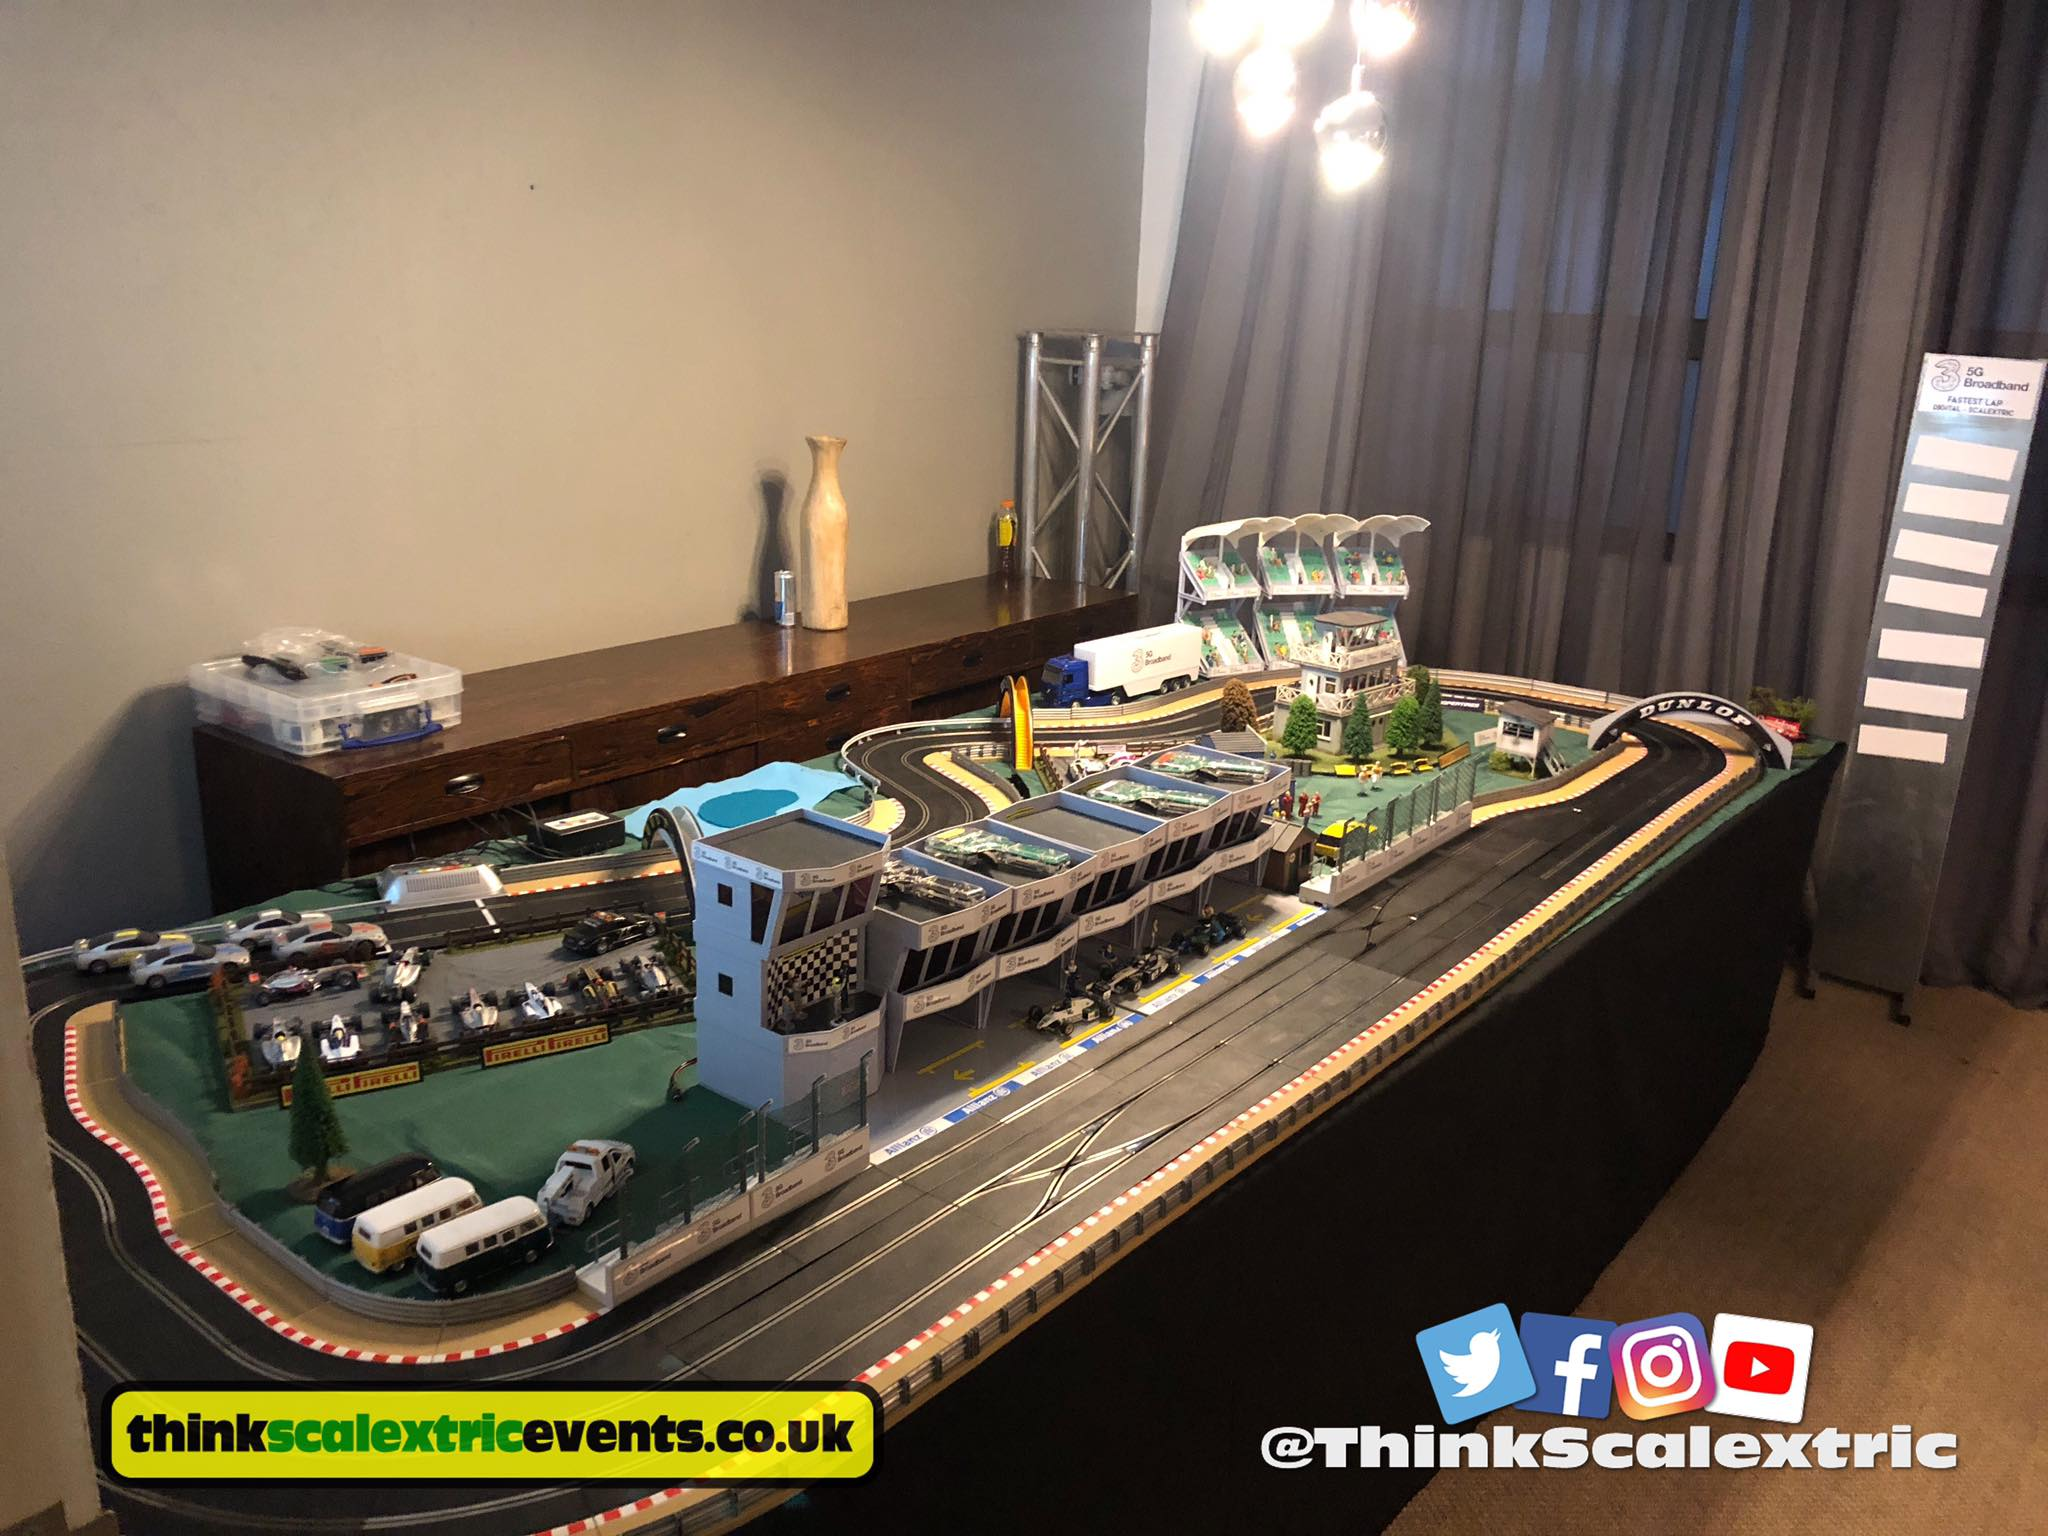 Scalextric at The Hoxton London for Three 5G Broadband